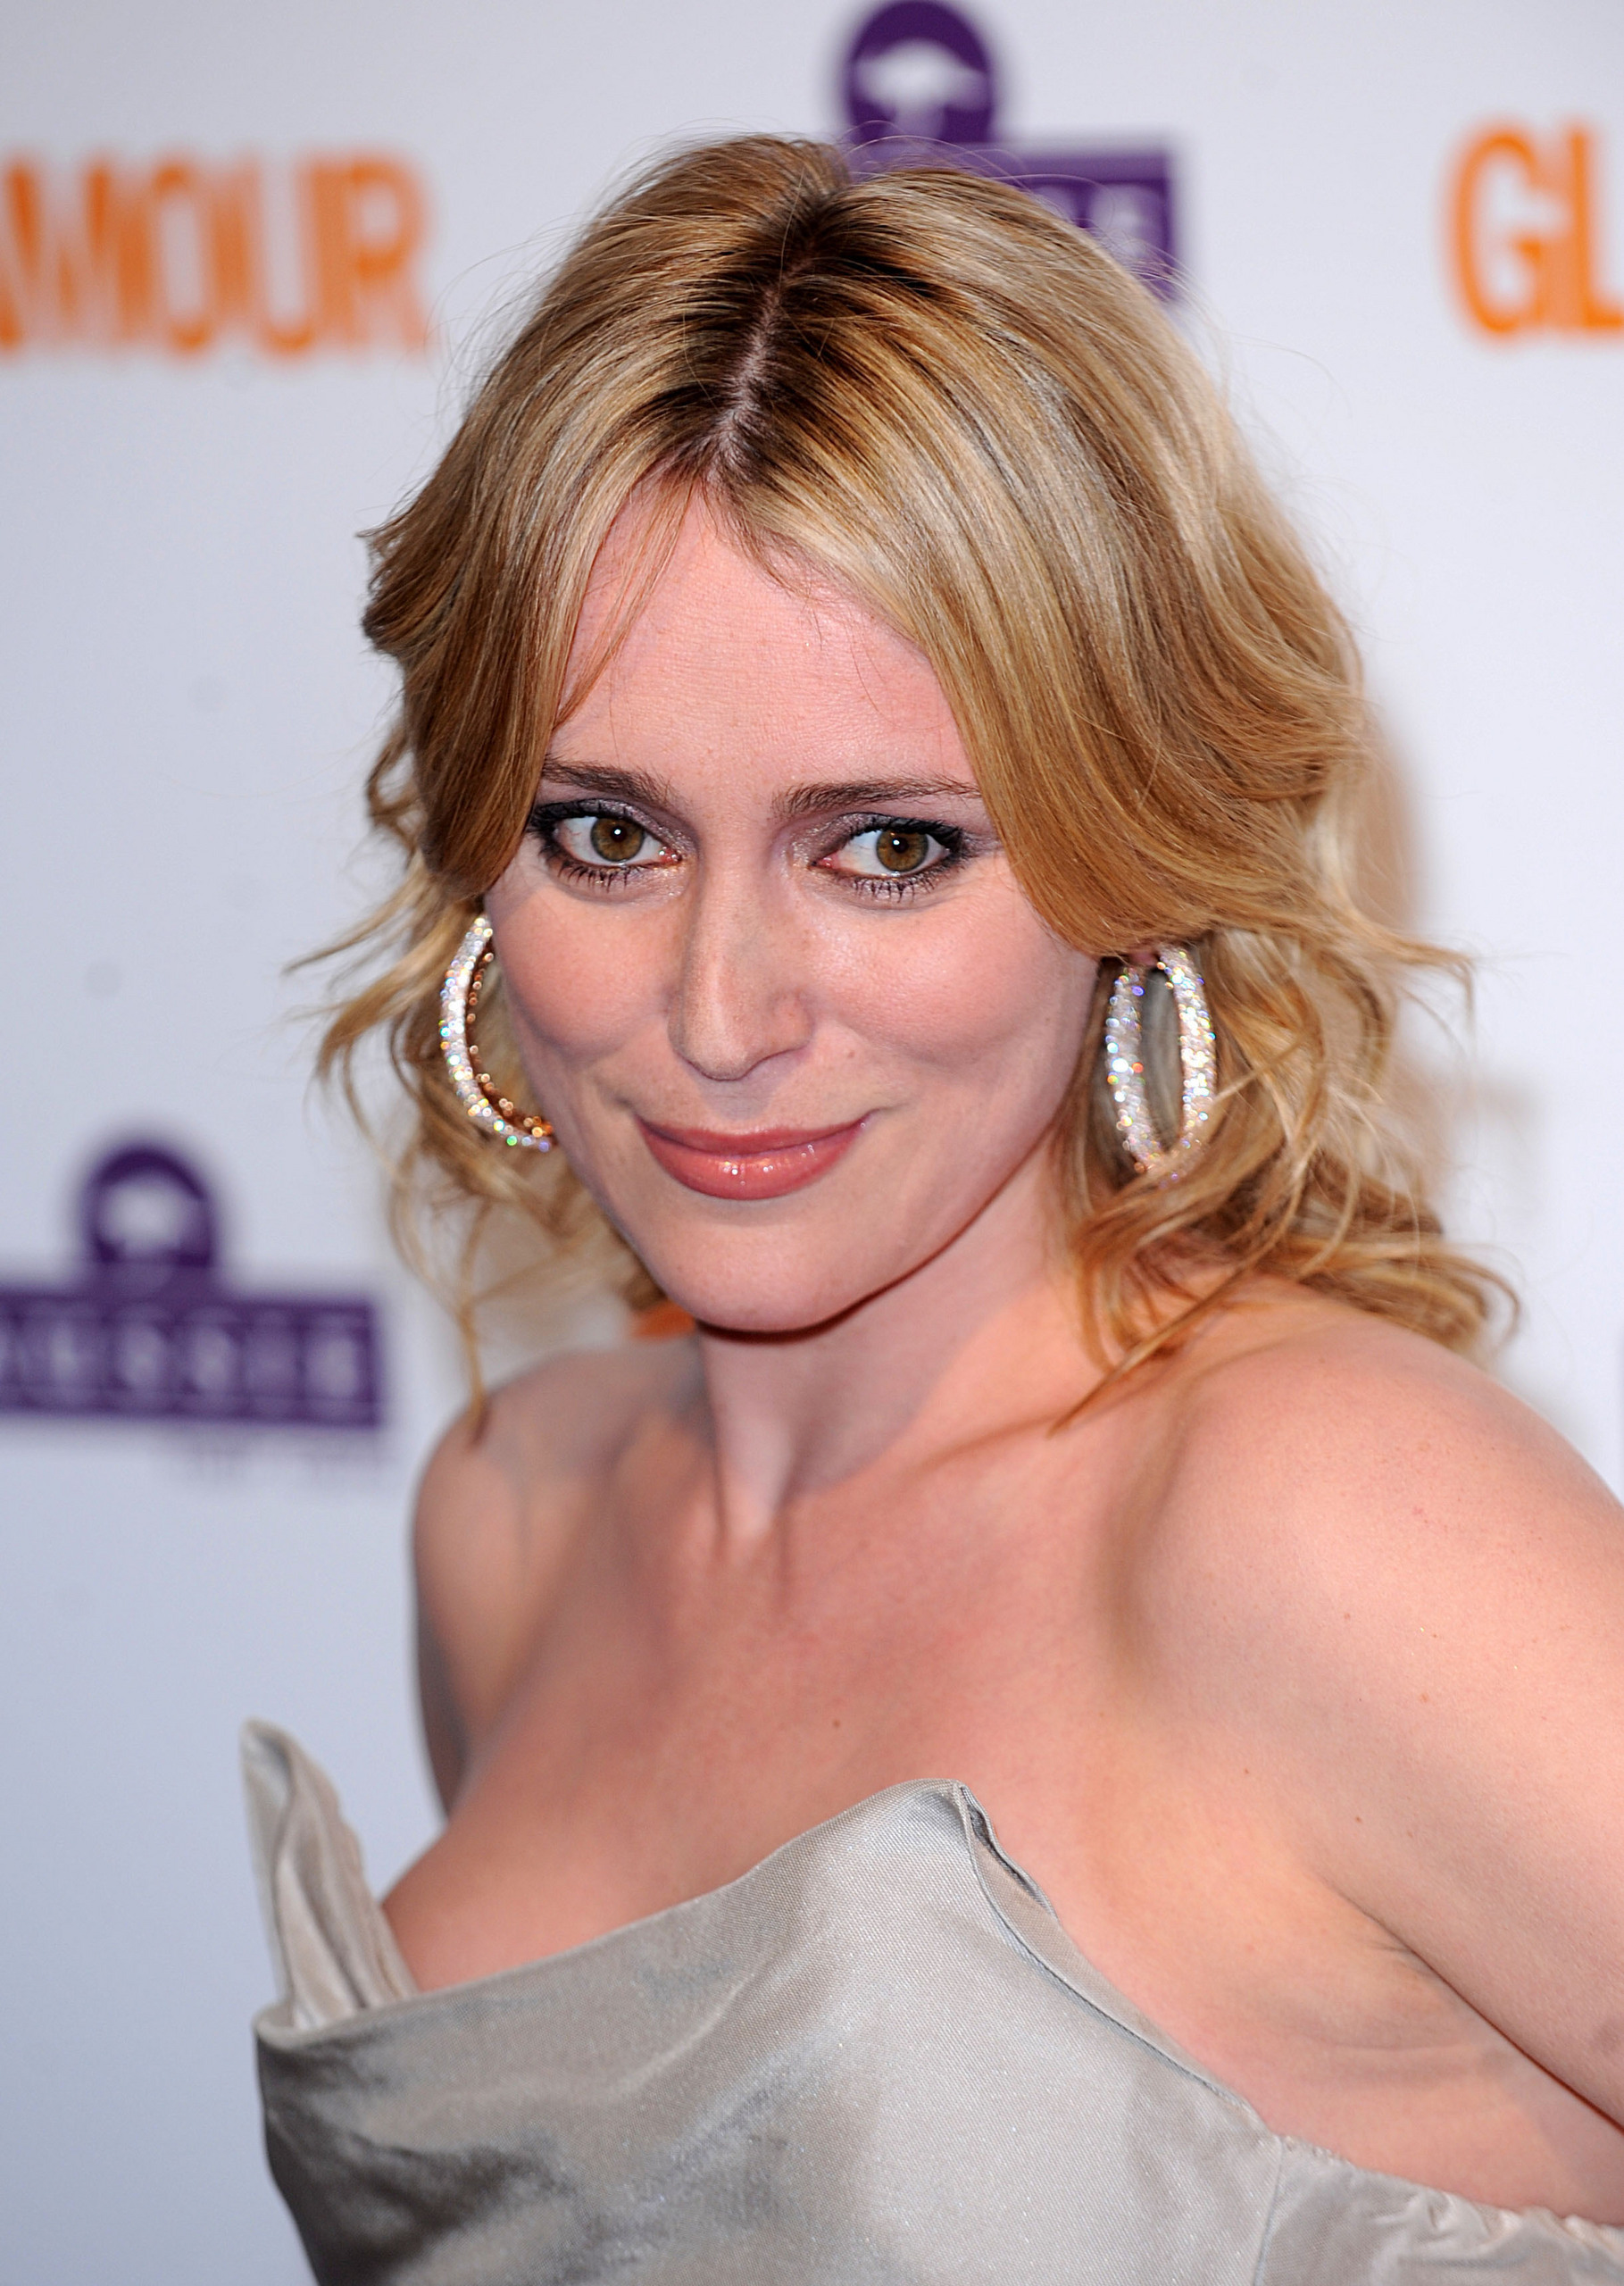 Keeley Hawes Galleries Keeley Hawes Pictures In Loaded